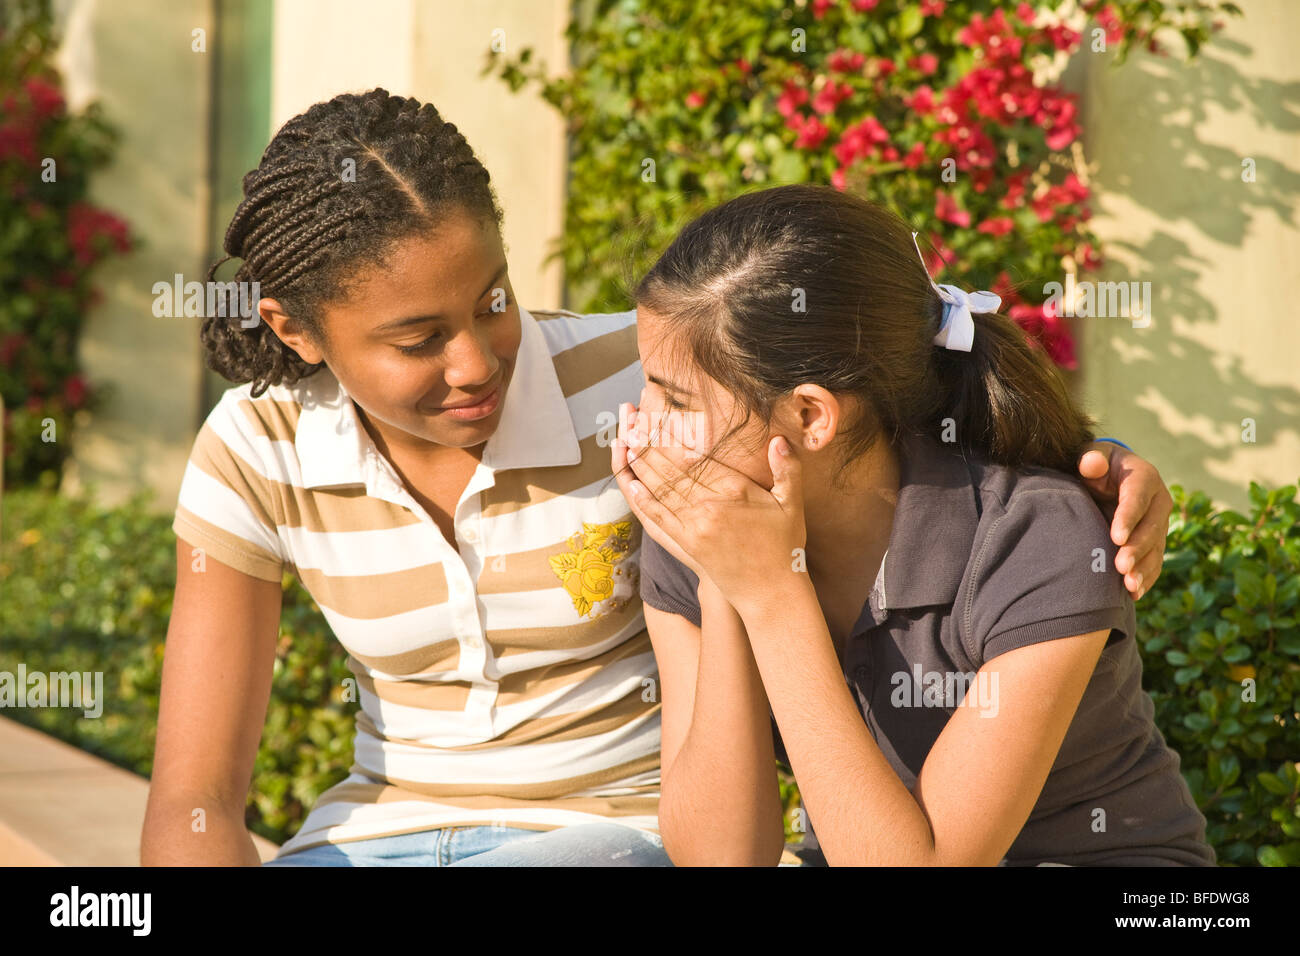 Hang hanging out African American 13-15 year old kind kindly listens listening teenage girl comforts sad girlfriend. - Stock Image